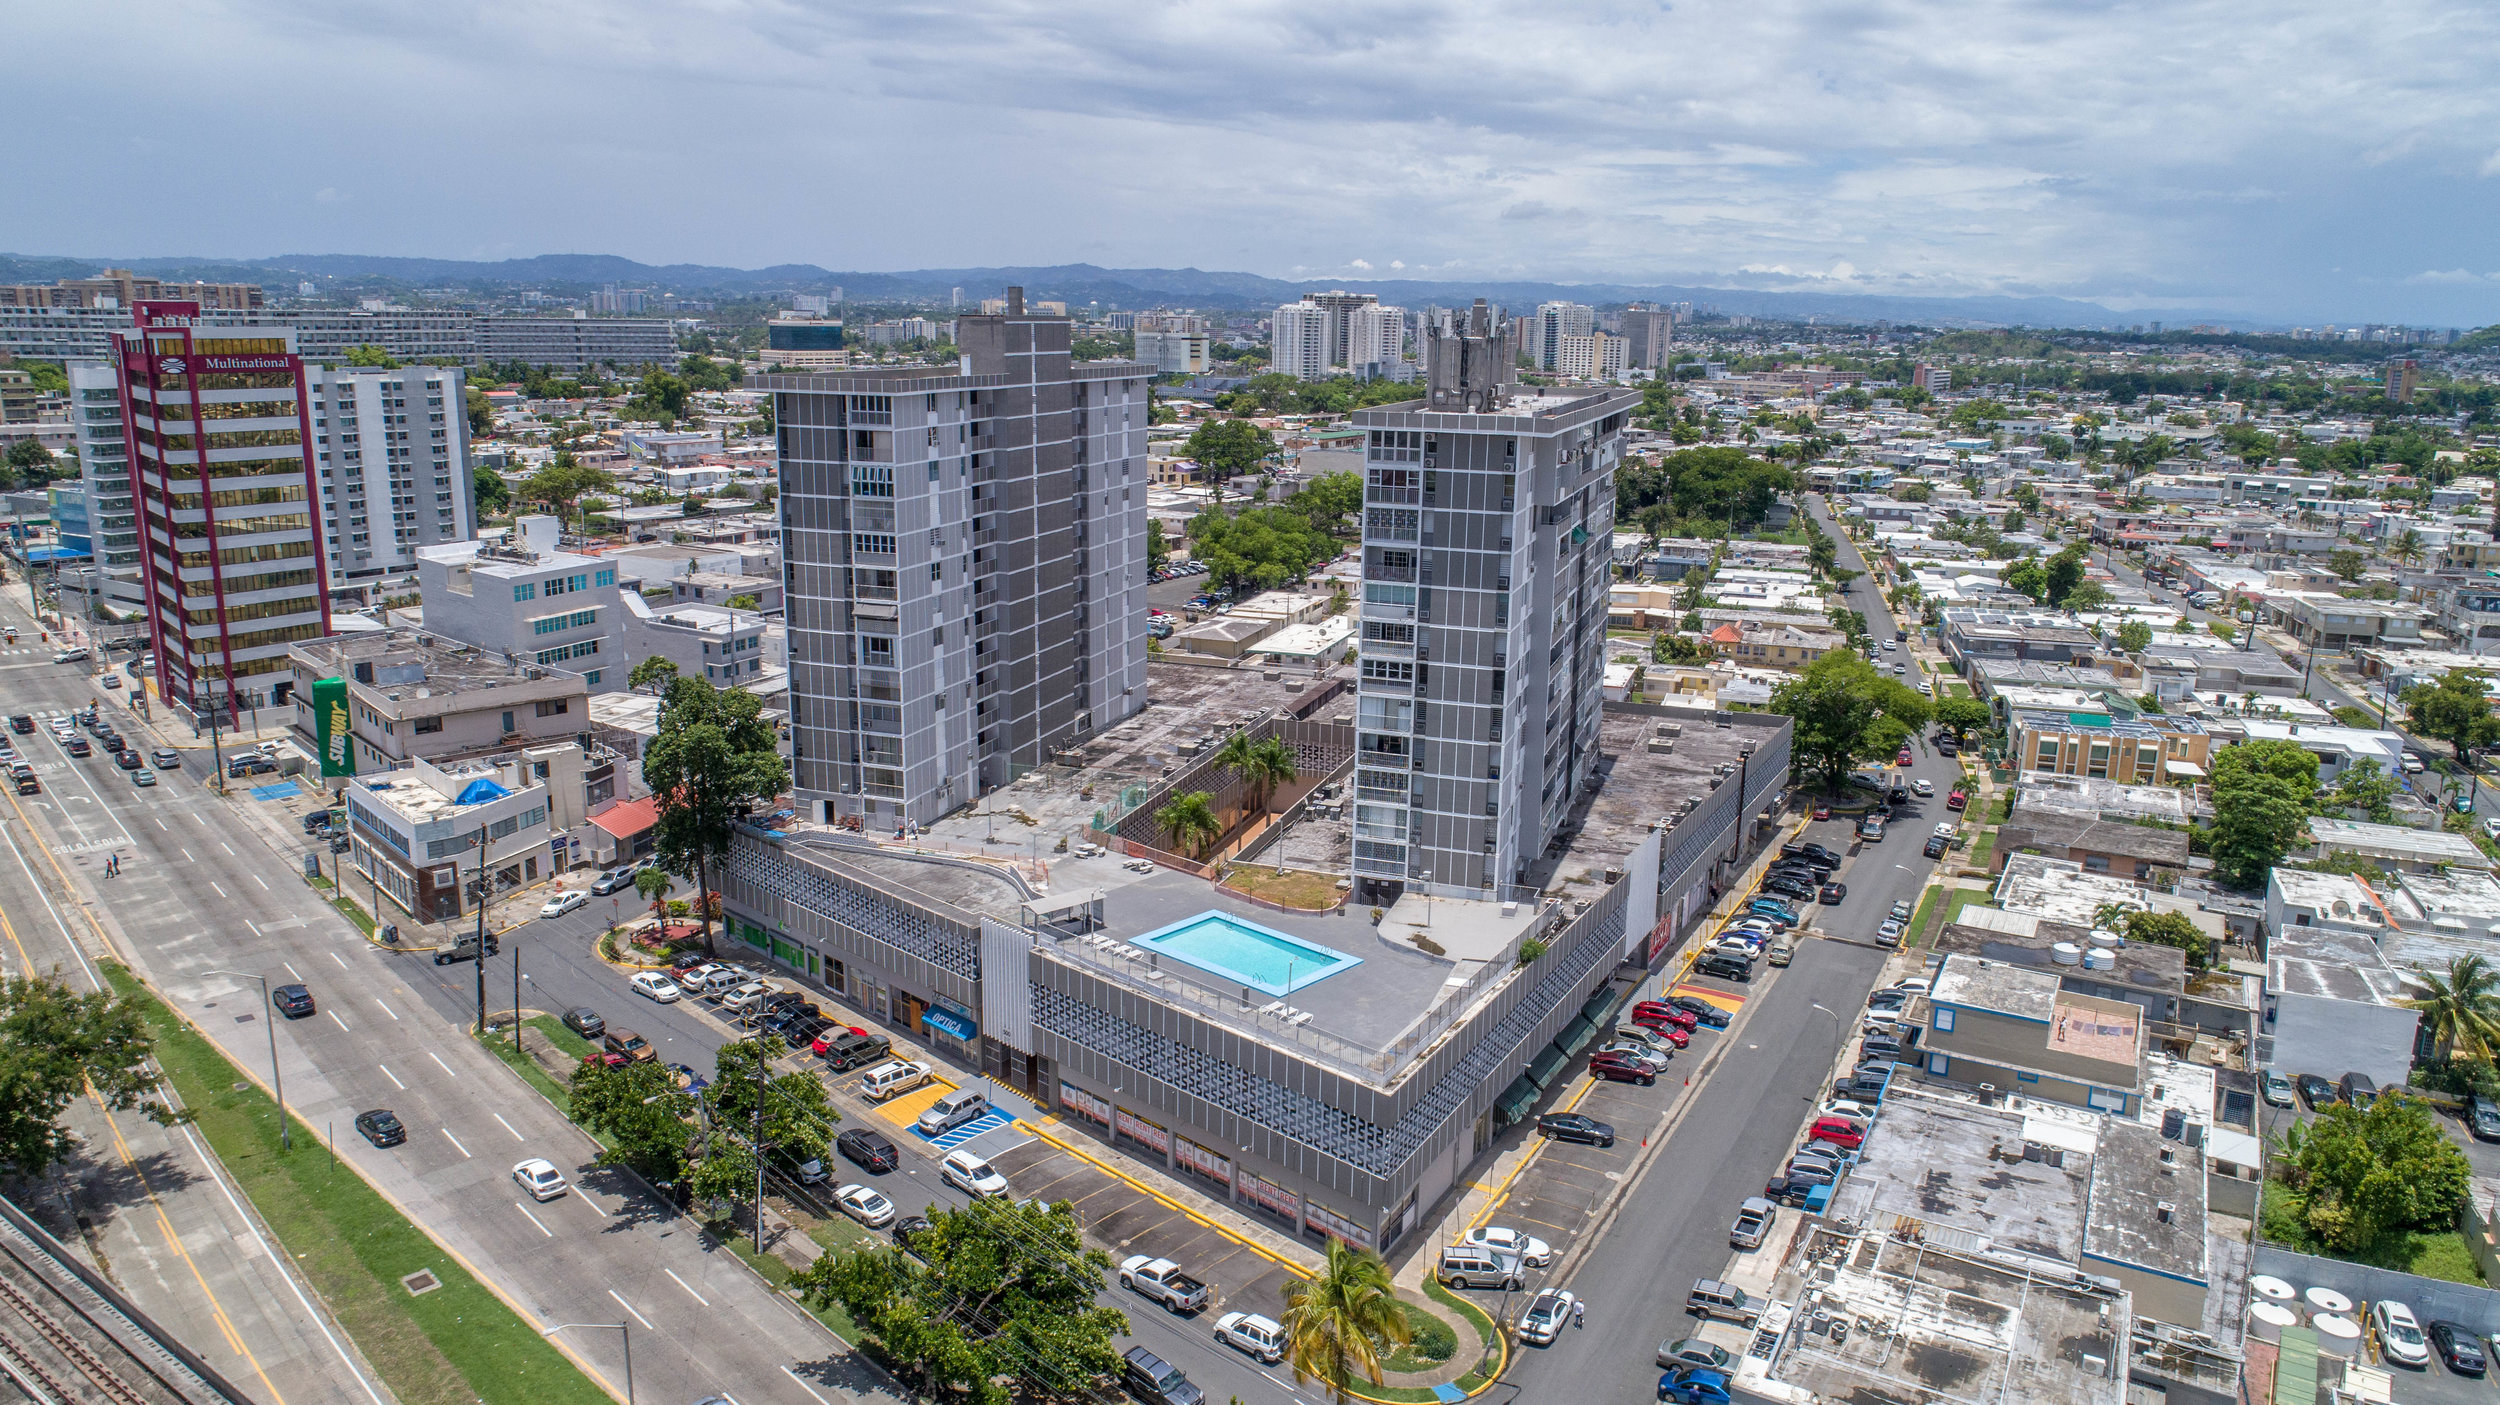 17 STORY / 162 APARTMENTS, OFFICES & STORES